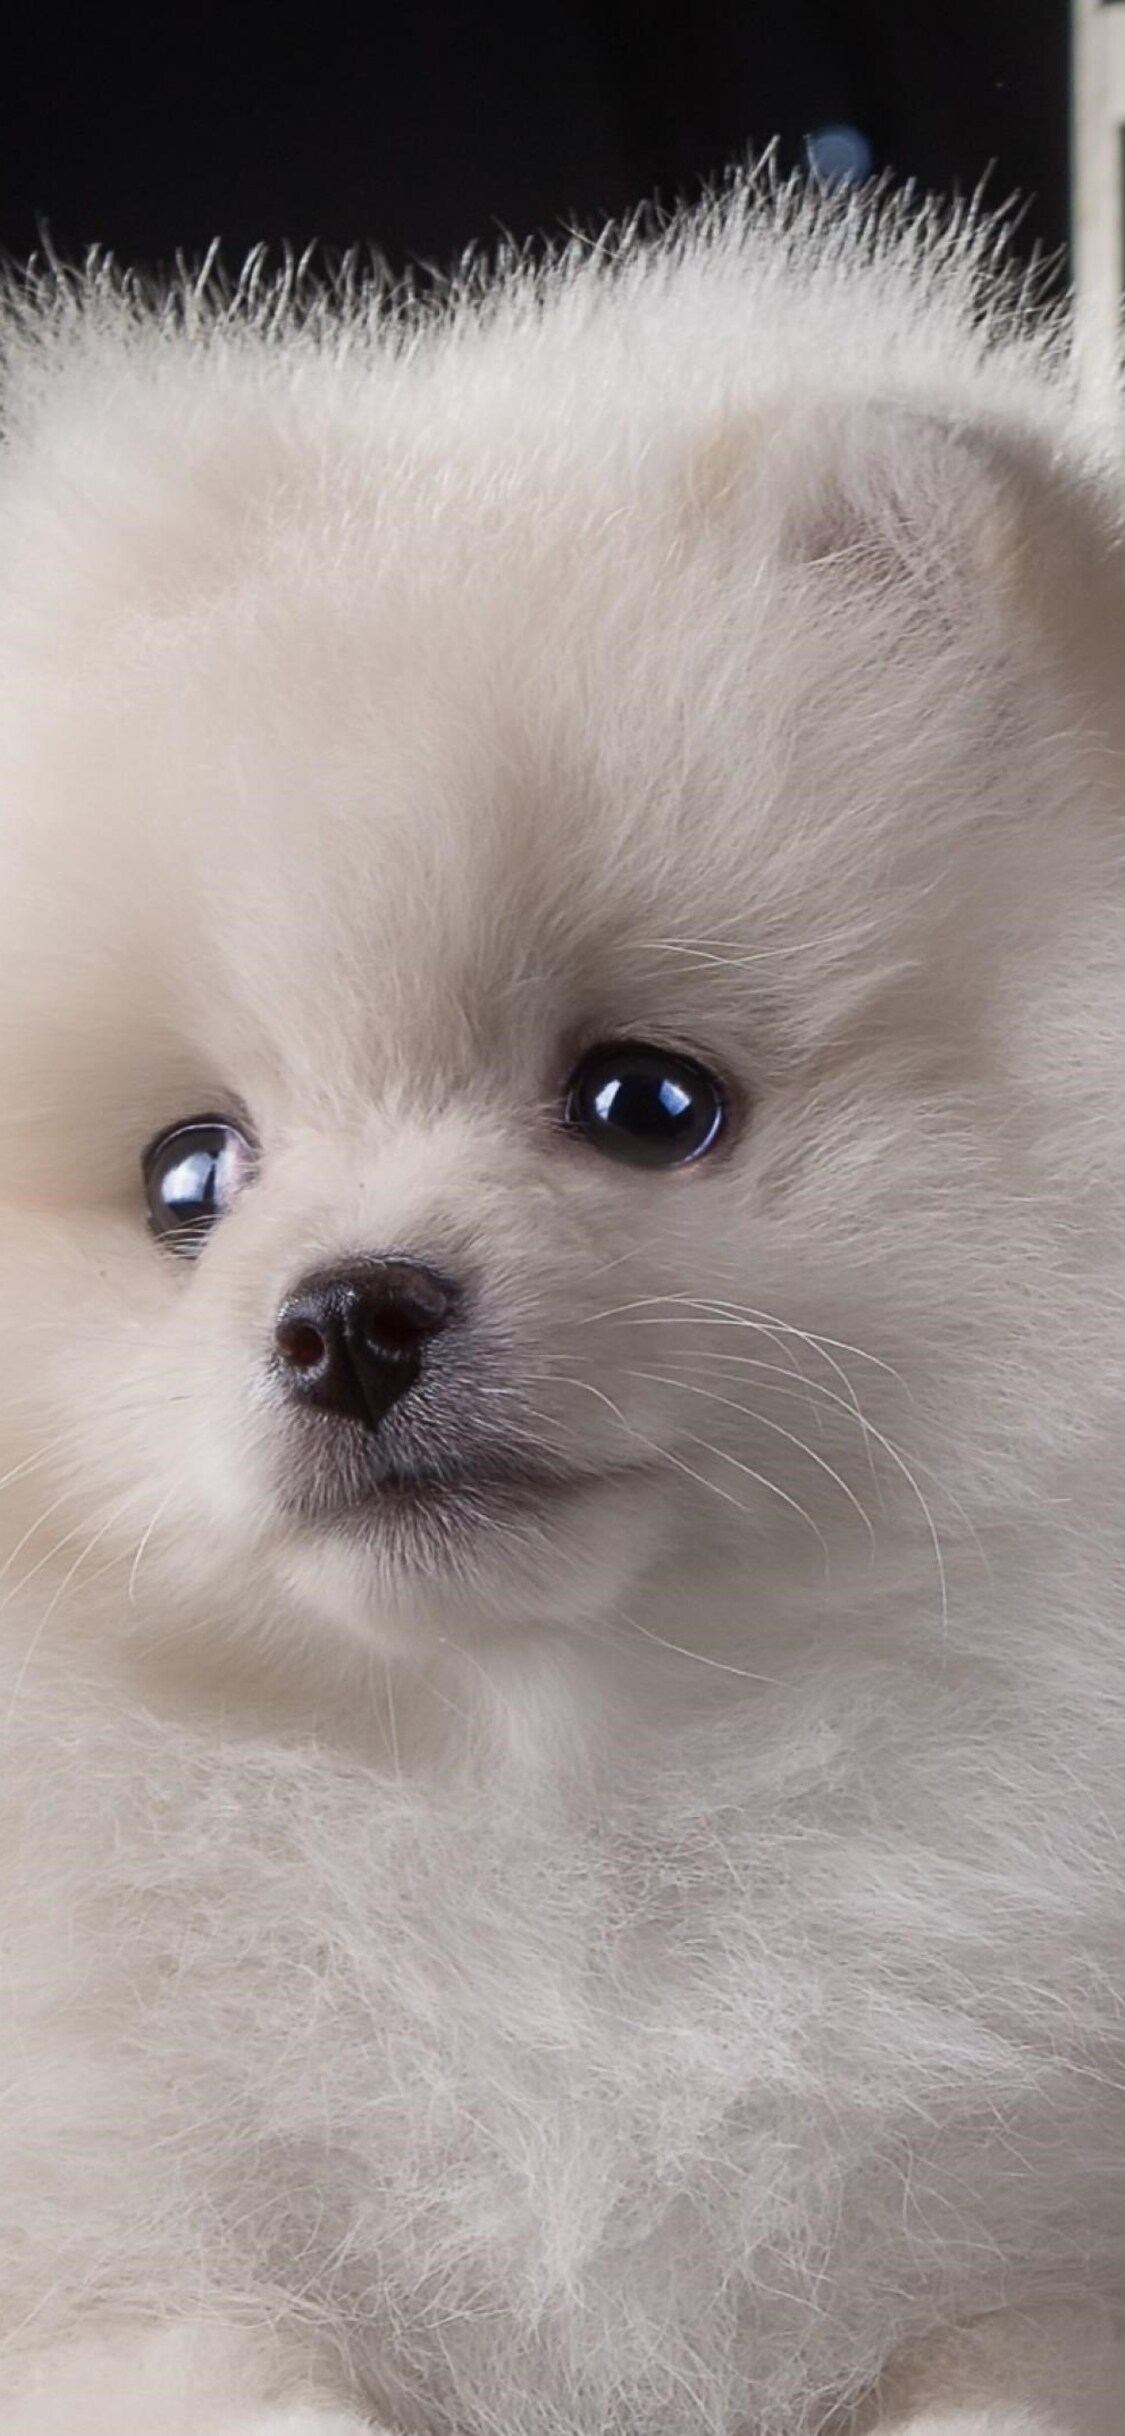 1125x2436 Puppy White Cute Iphone Xs Iphone 10 Iphone X Hd 4k Wallpapers Images Backgrounds Photos And Pictures